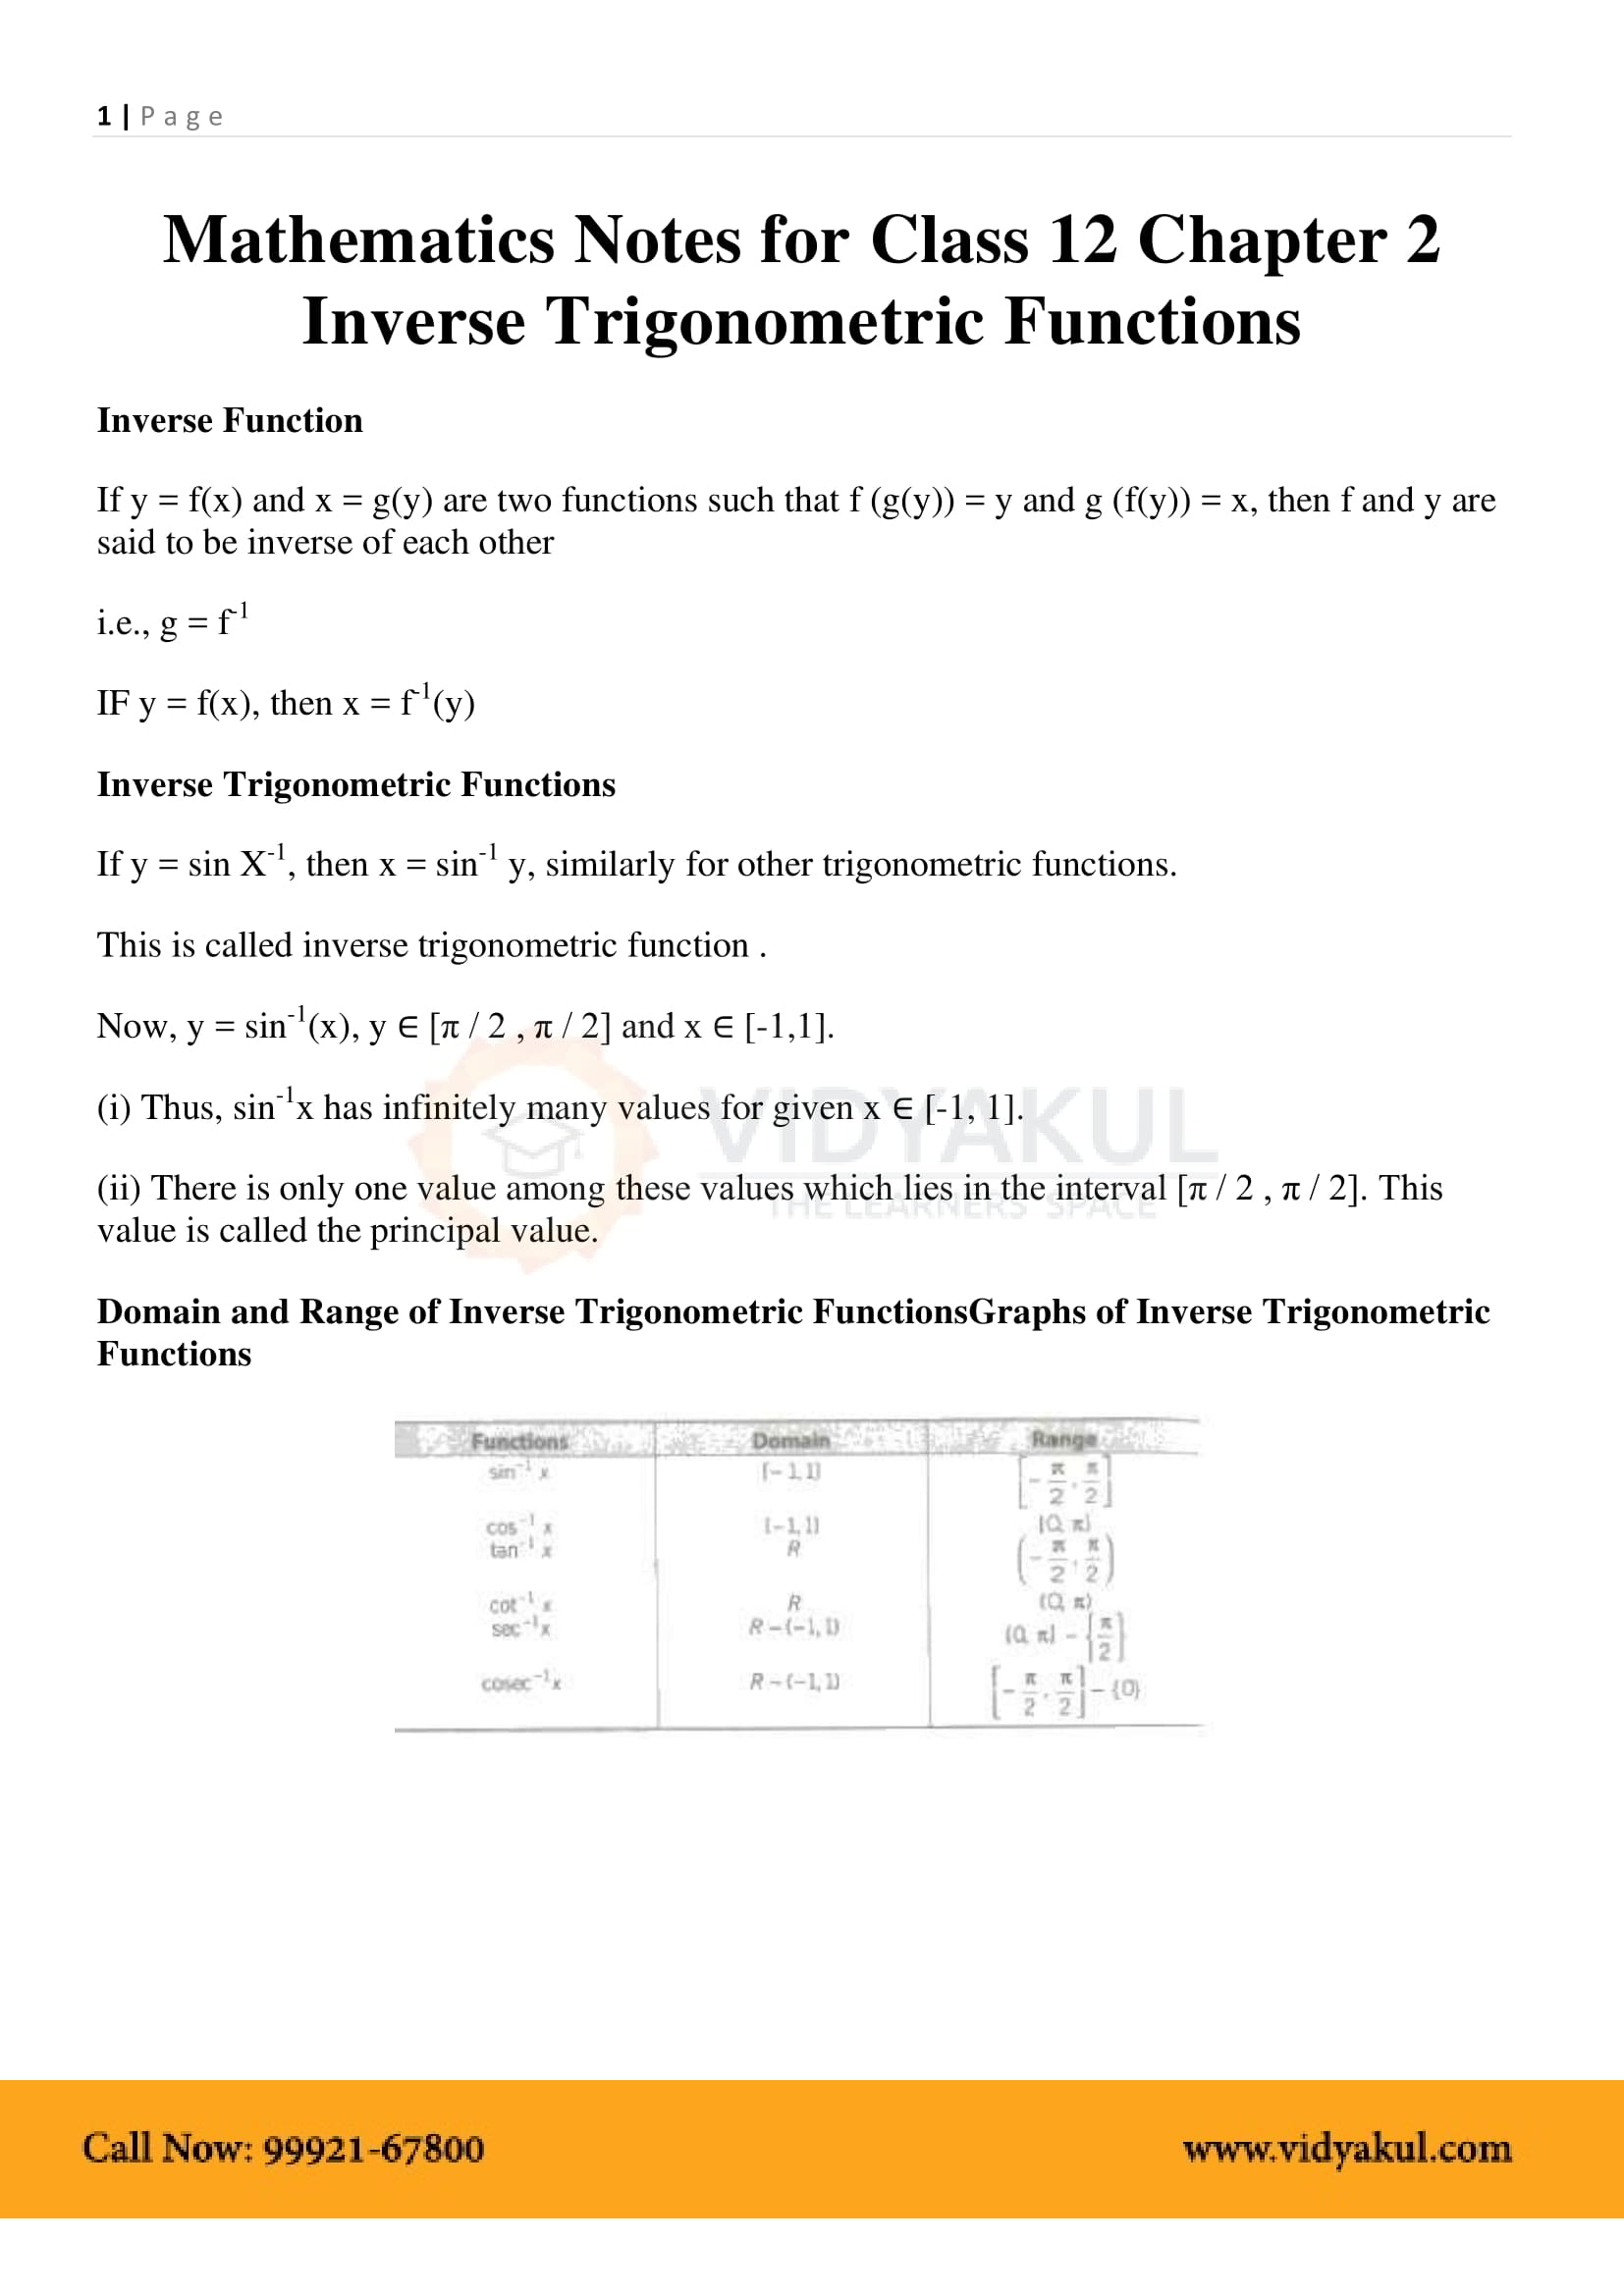 Inverse Trigonometric Functions Class 12 Formulas and Notes